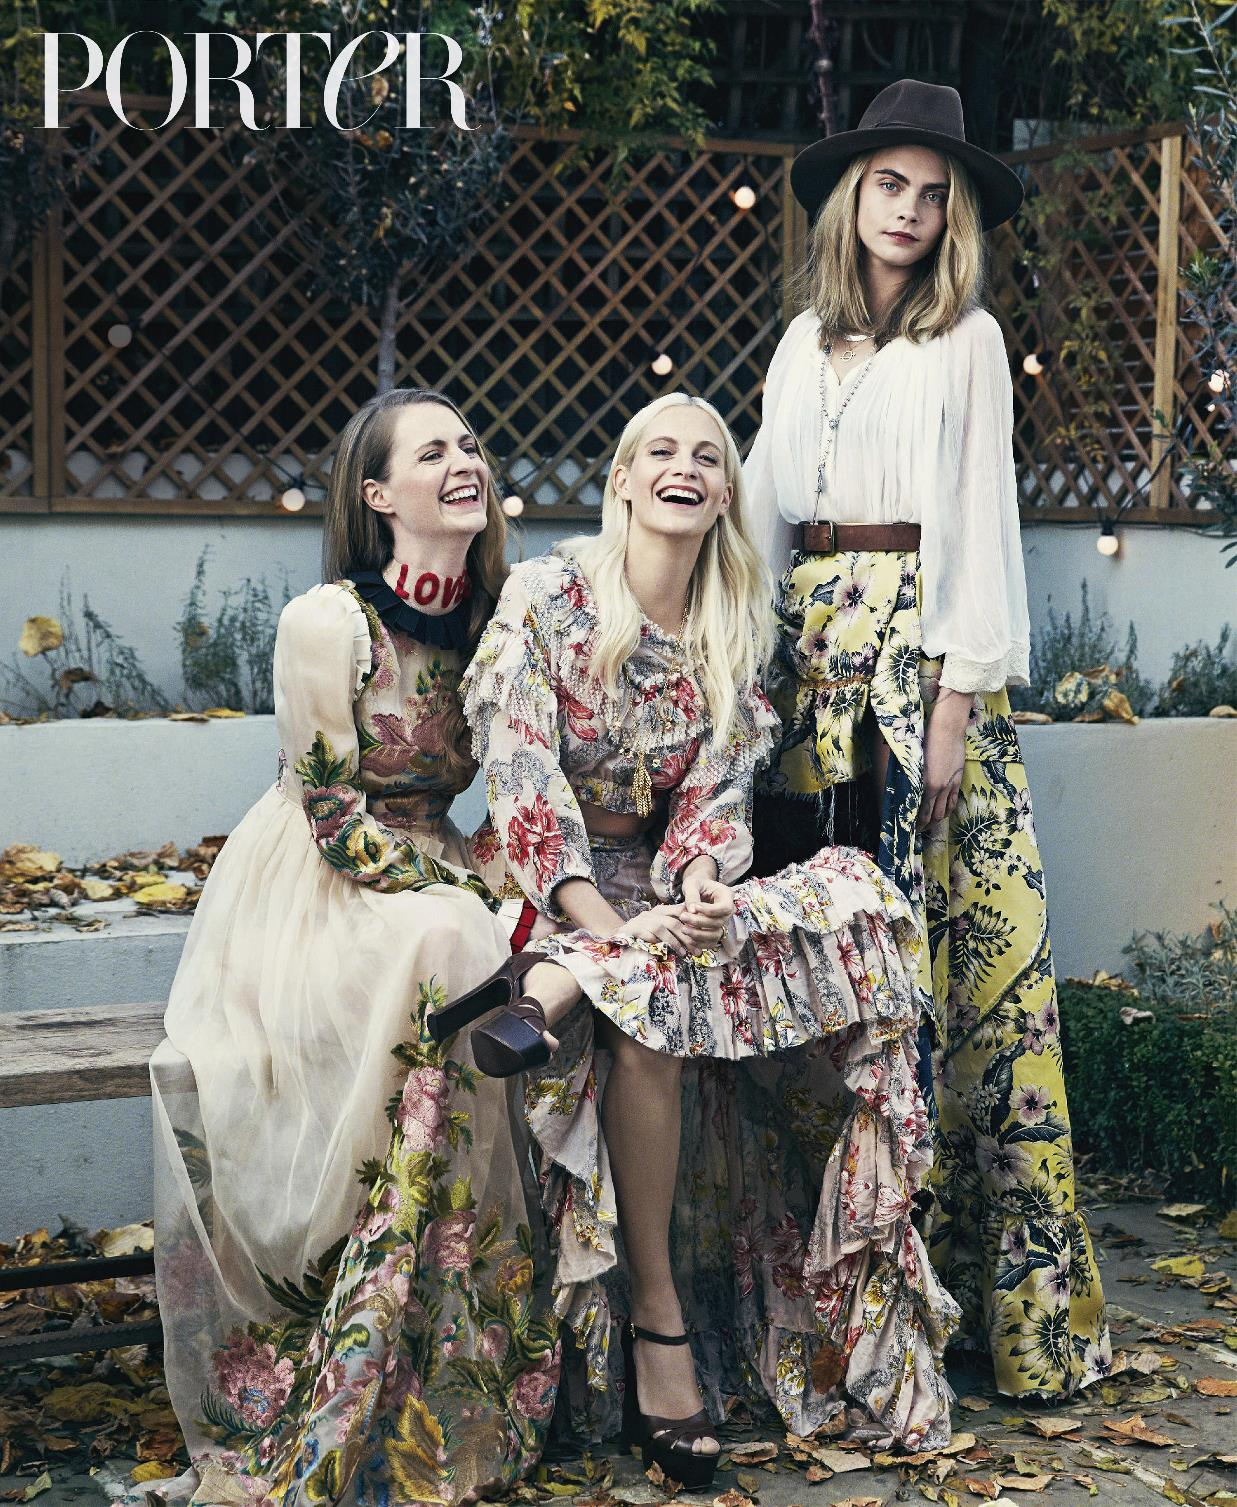 (L-R) Chloe wears dress by Gucci, Poppy wears top and skirt by Philosophy di Lorenzo Serafini, necklaces by Aurelie Bid...